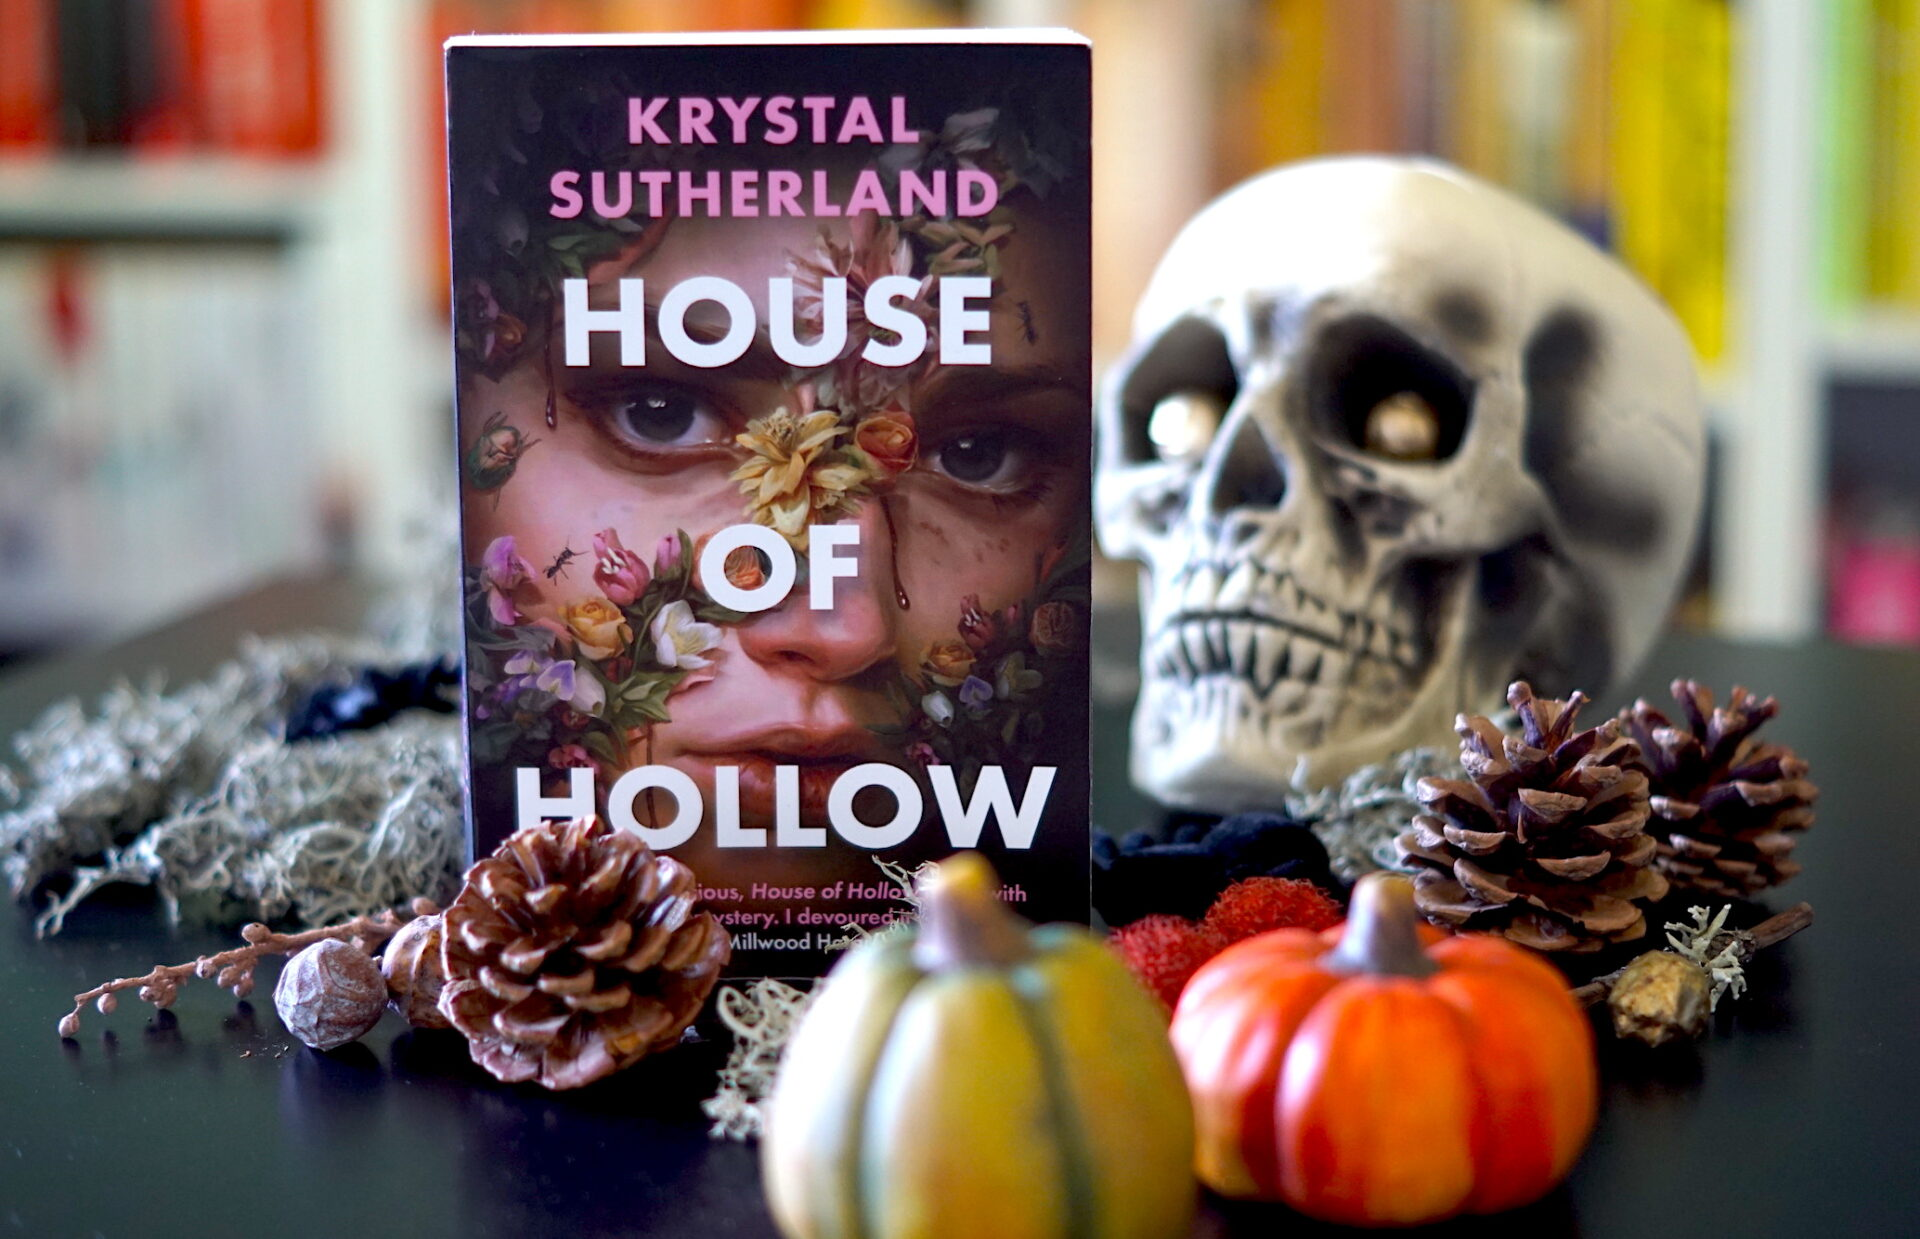 house of hollow book display